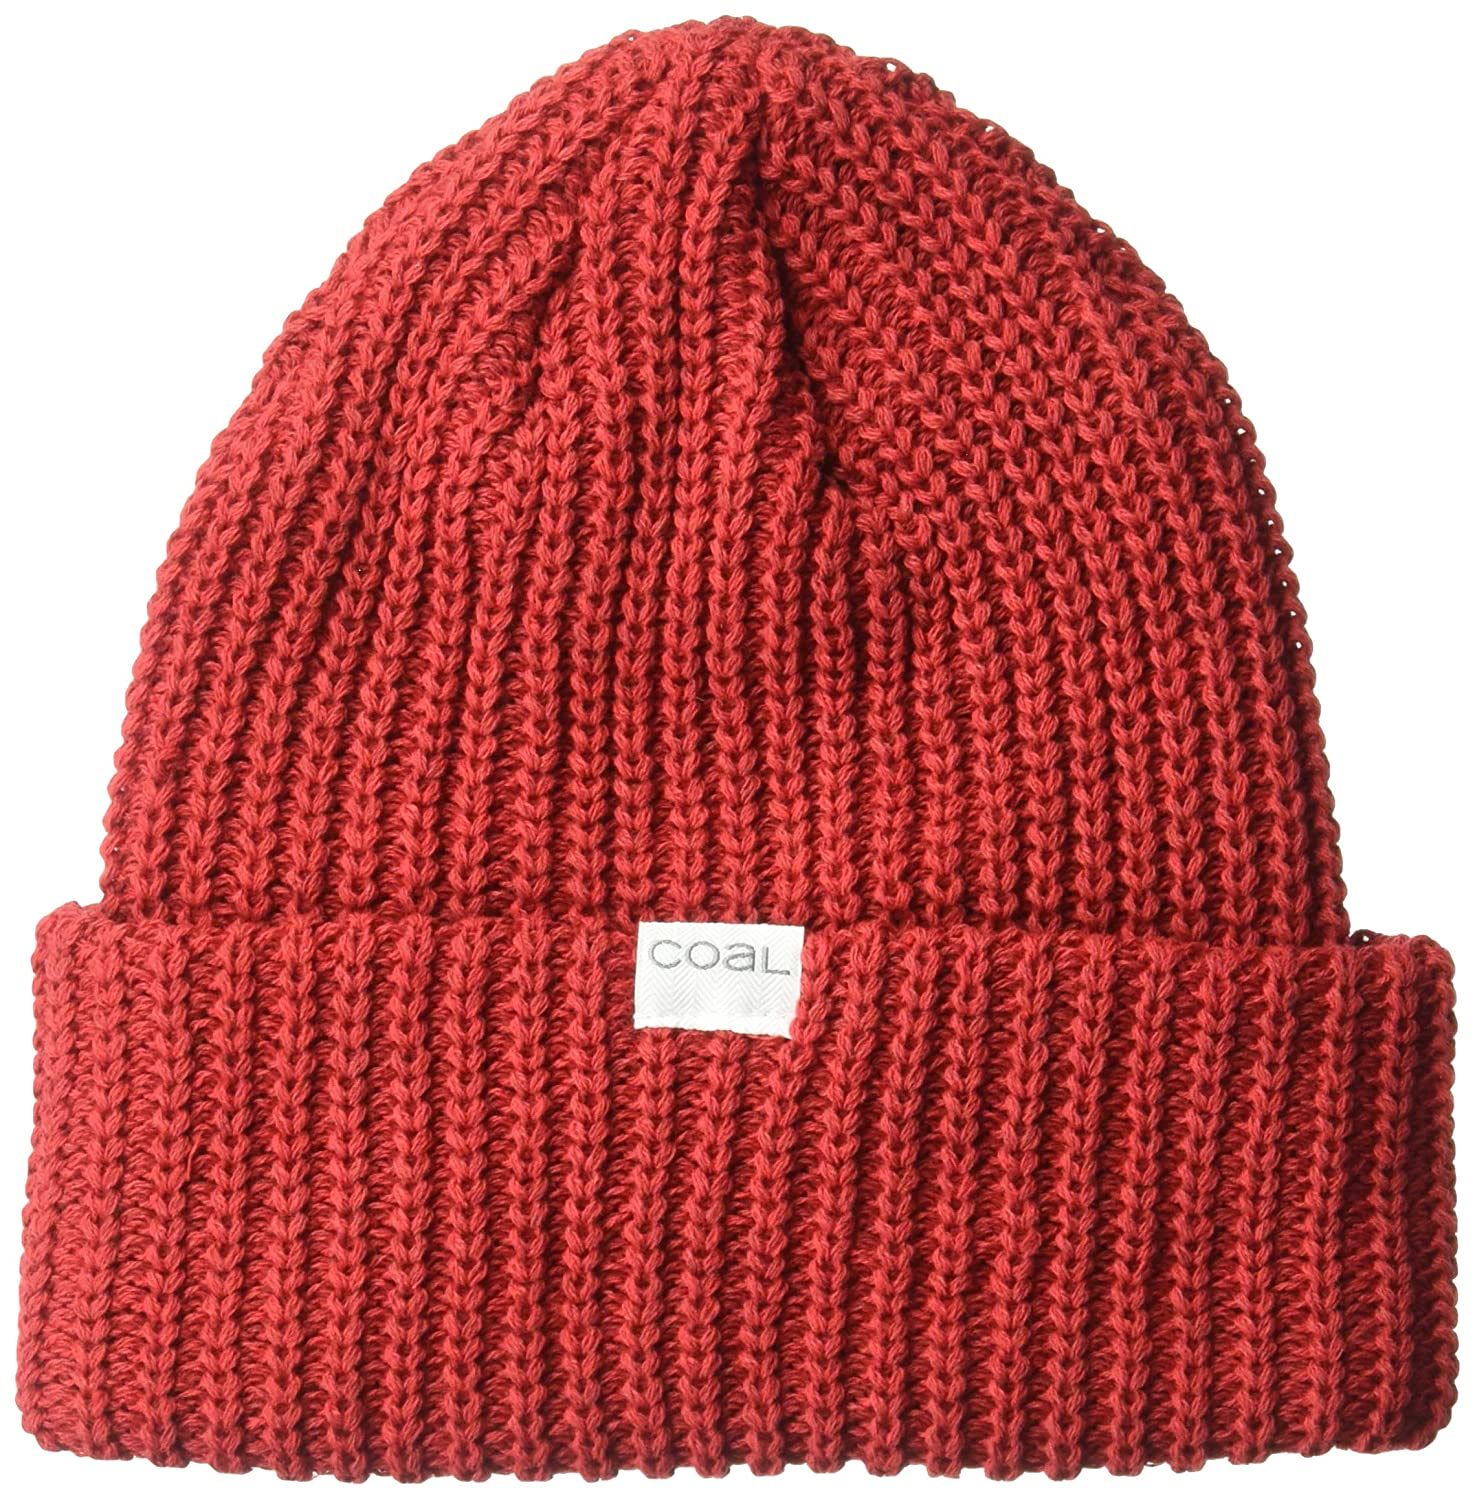 Coal Mens The Eddie Recycled Rib Knit Beanie Hat